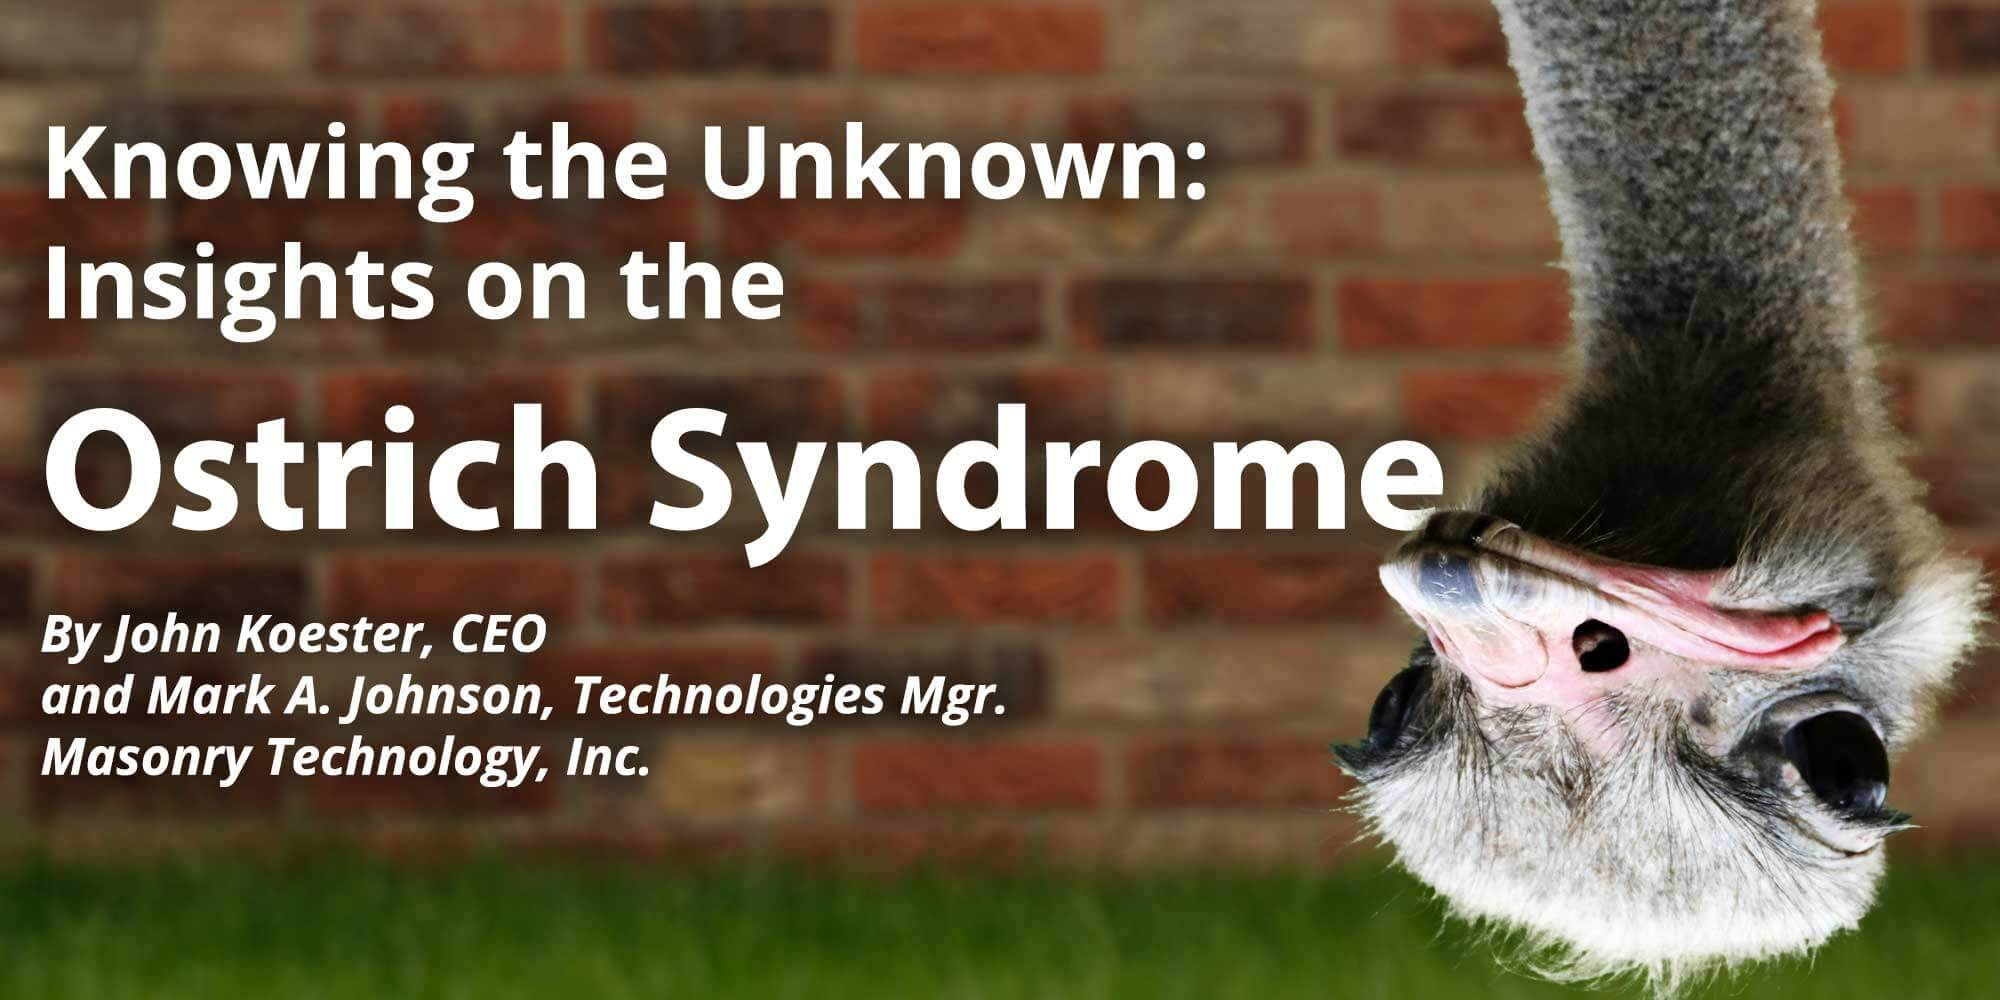 Knowing the Unknown - Insights on the Ostrich Syndrome